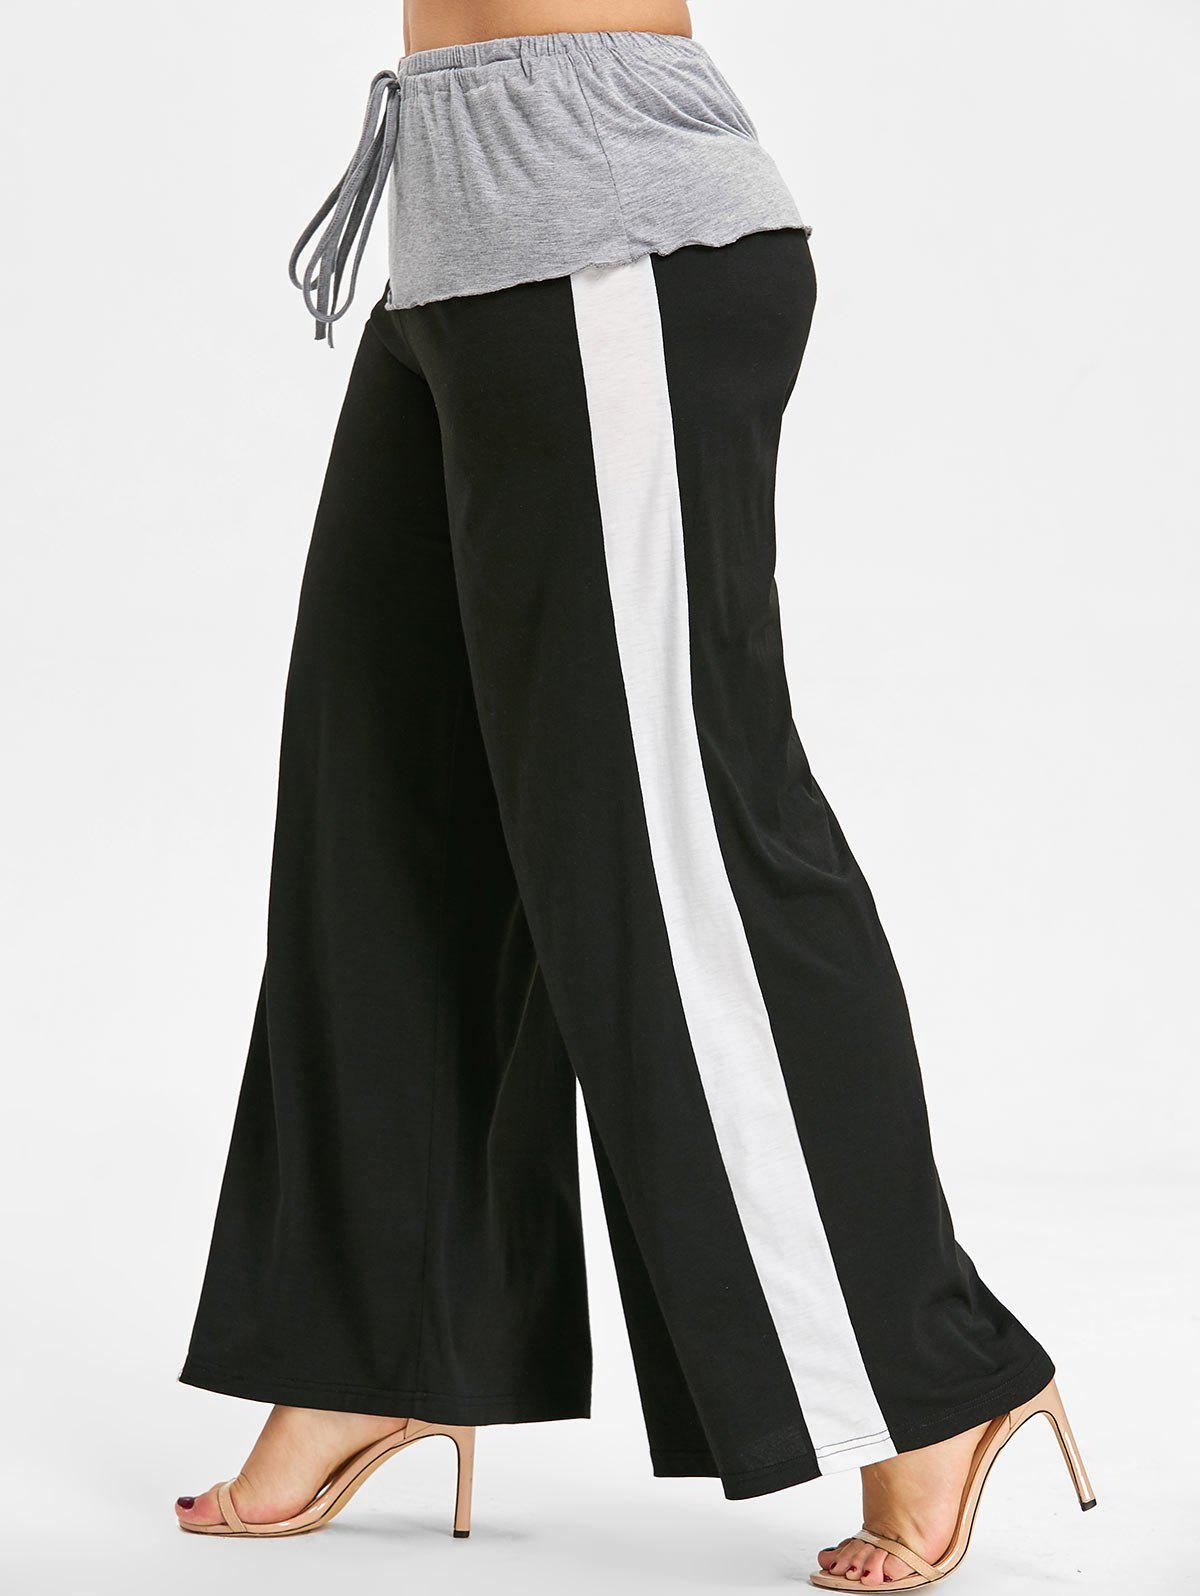 High Waist Plus Size Wide Leg Pants - BLACK 5X